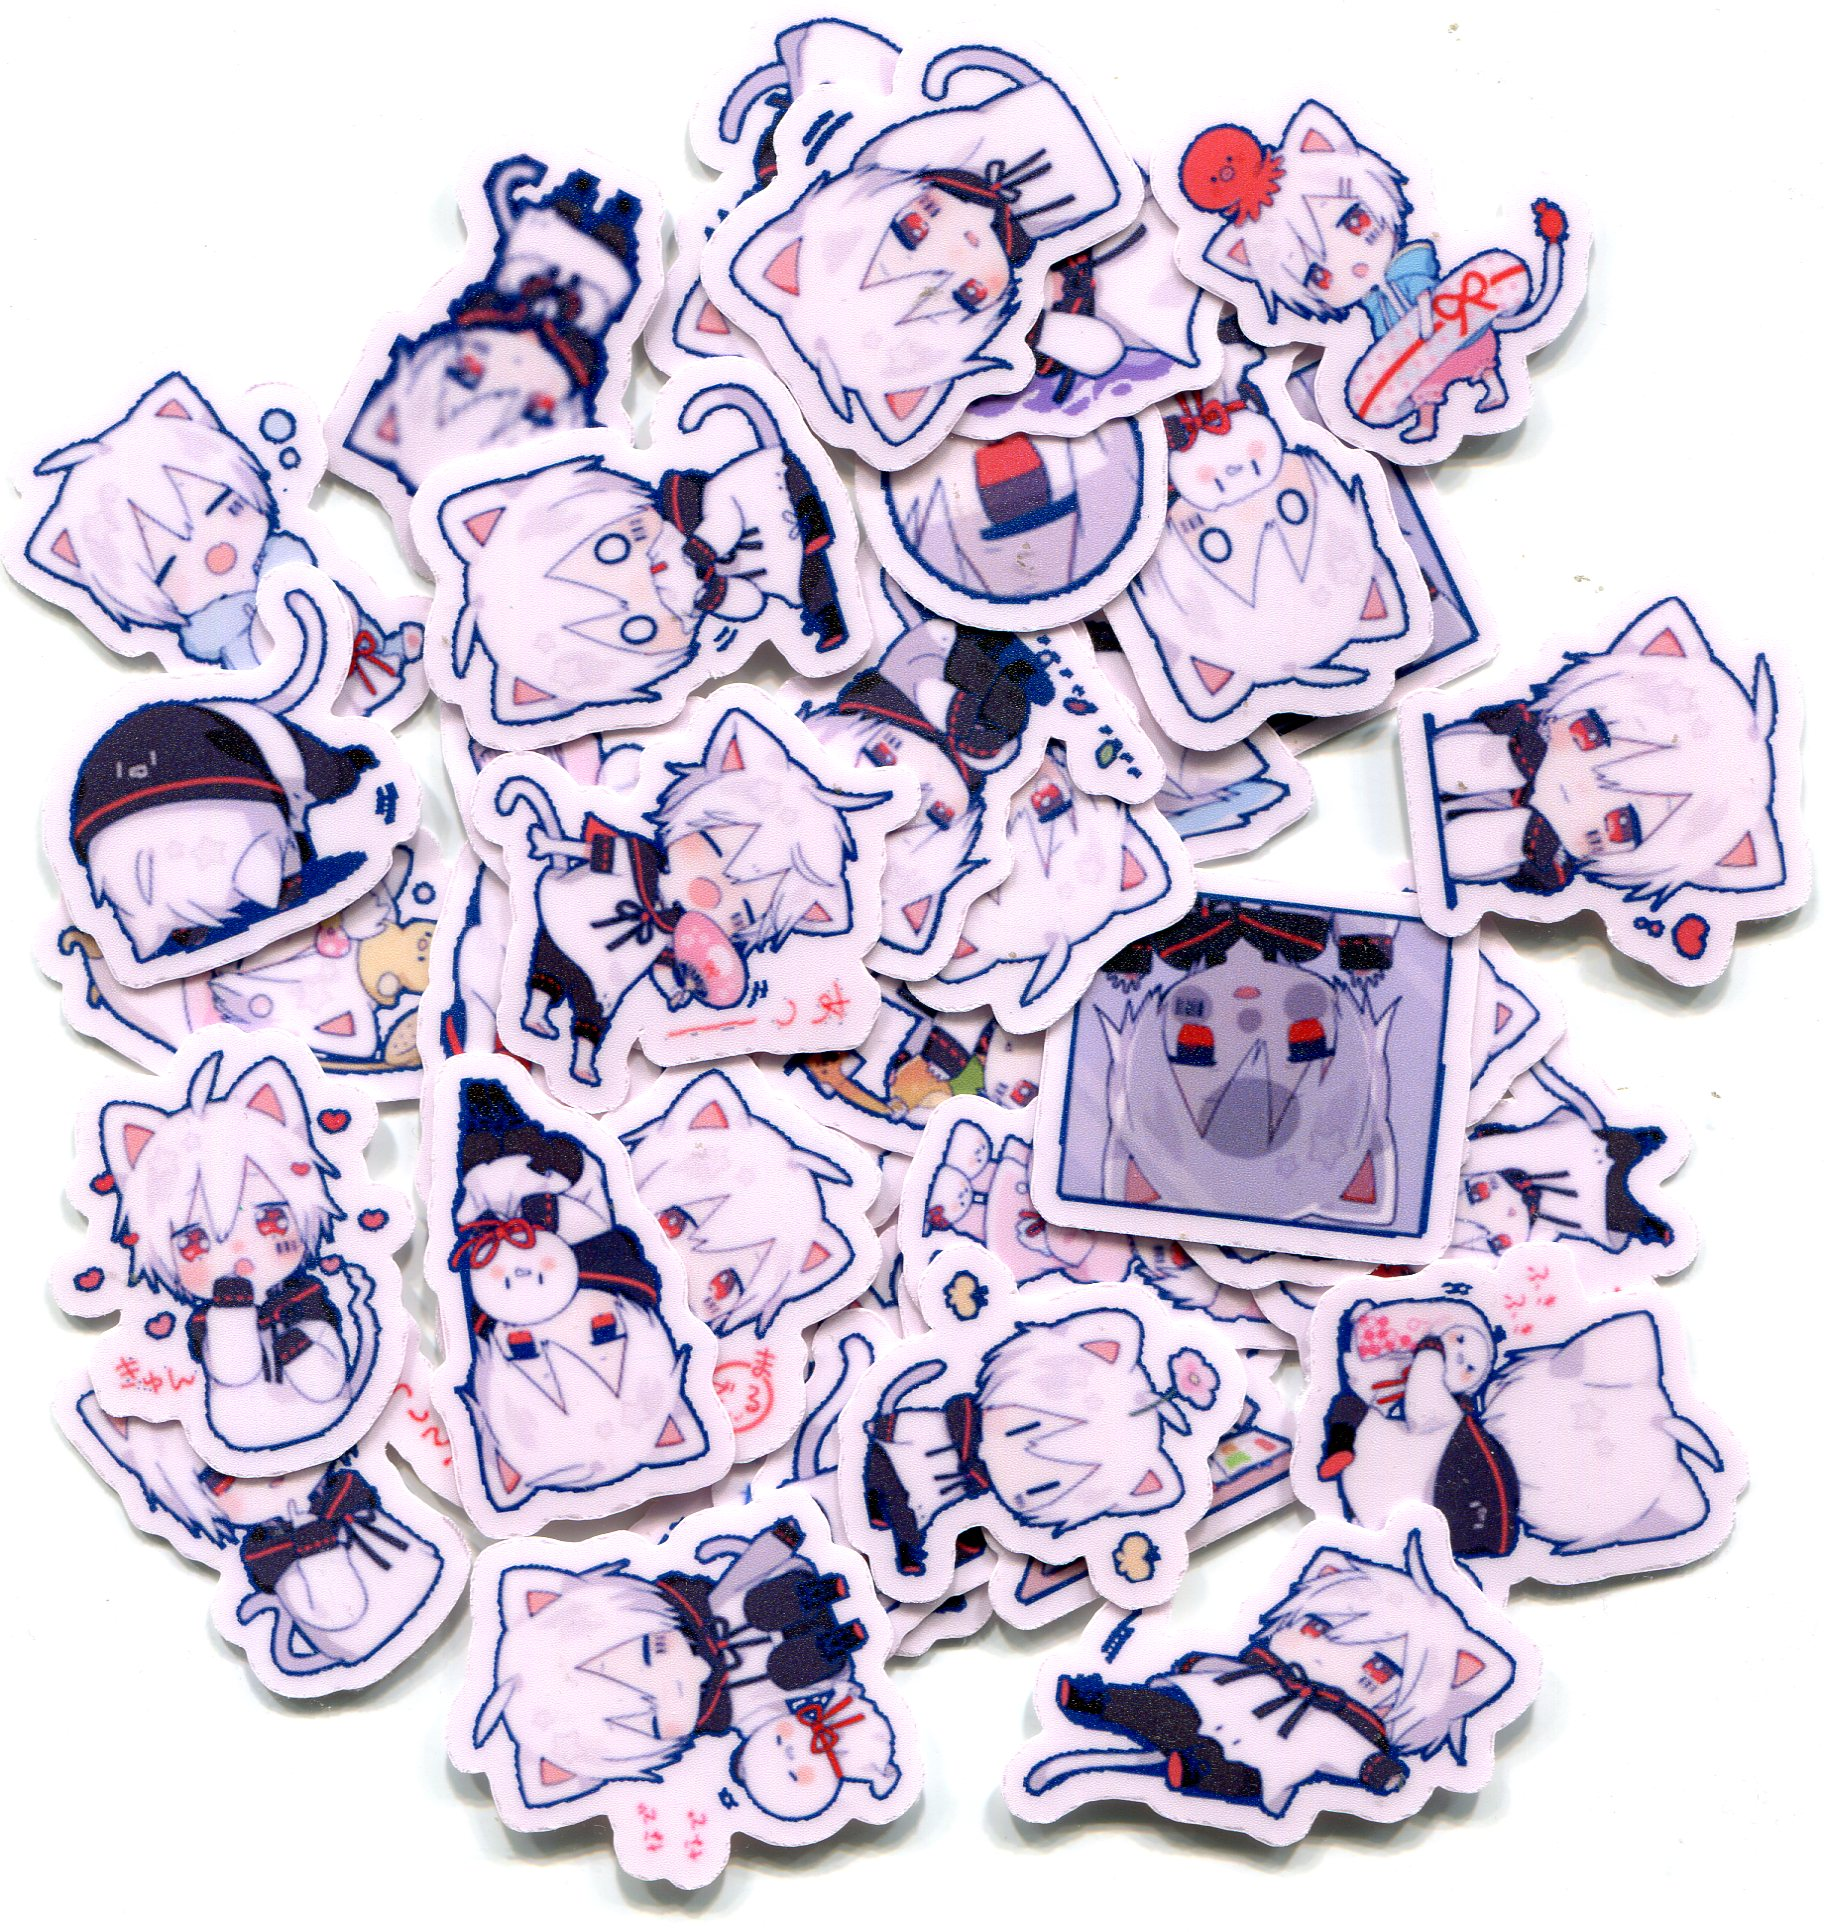 Mafumafu Sticker (cat) vol.2 手帐相册贴纸 40张 Z 837